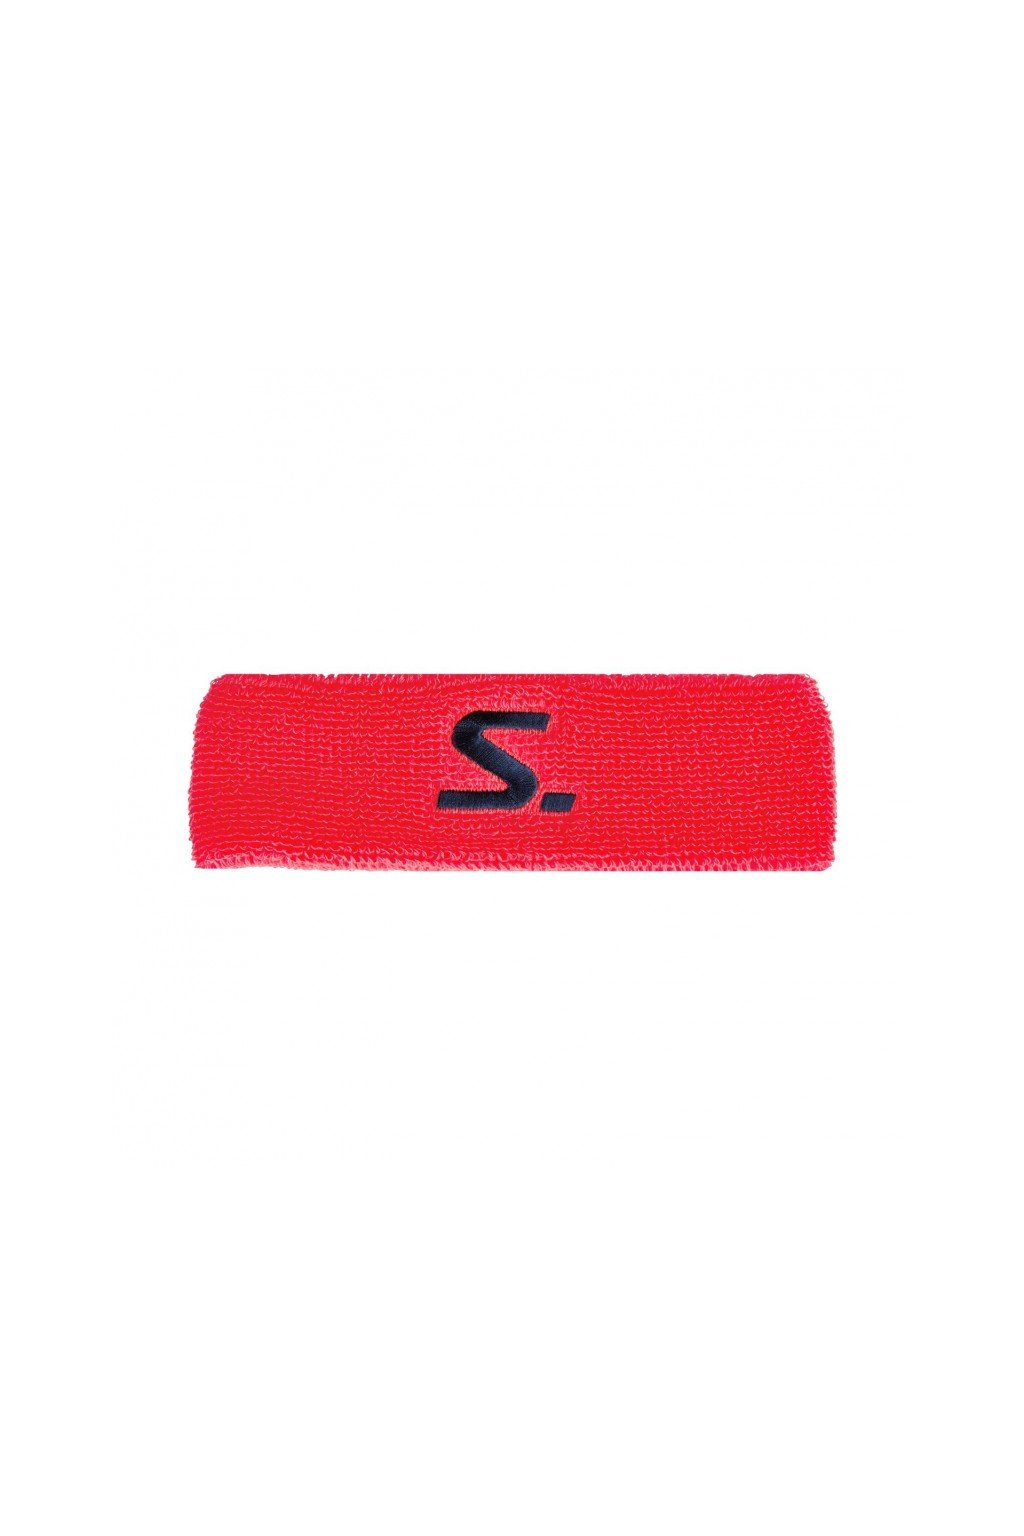 salming knitted headband coral navy (1)